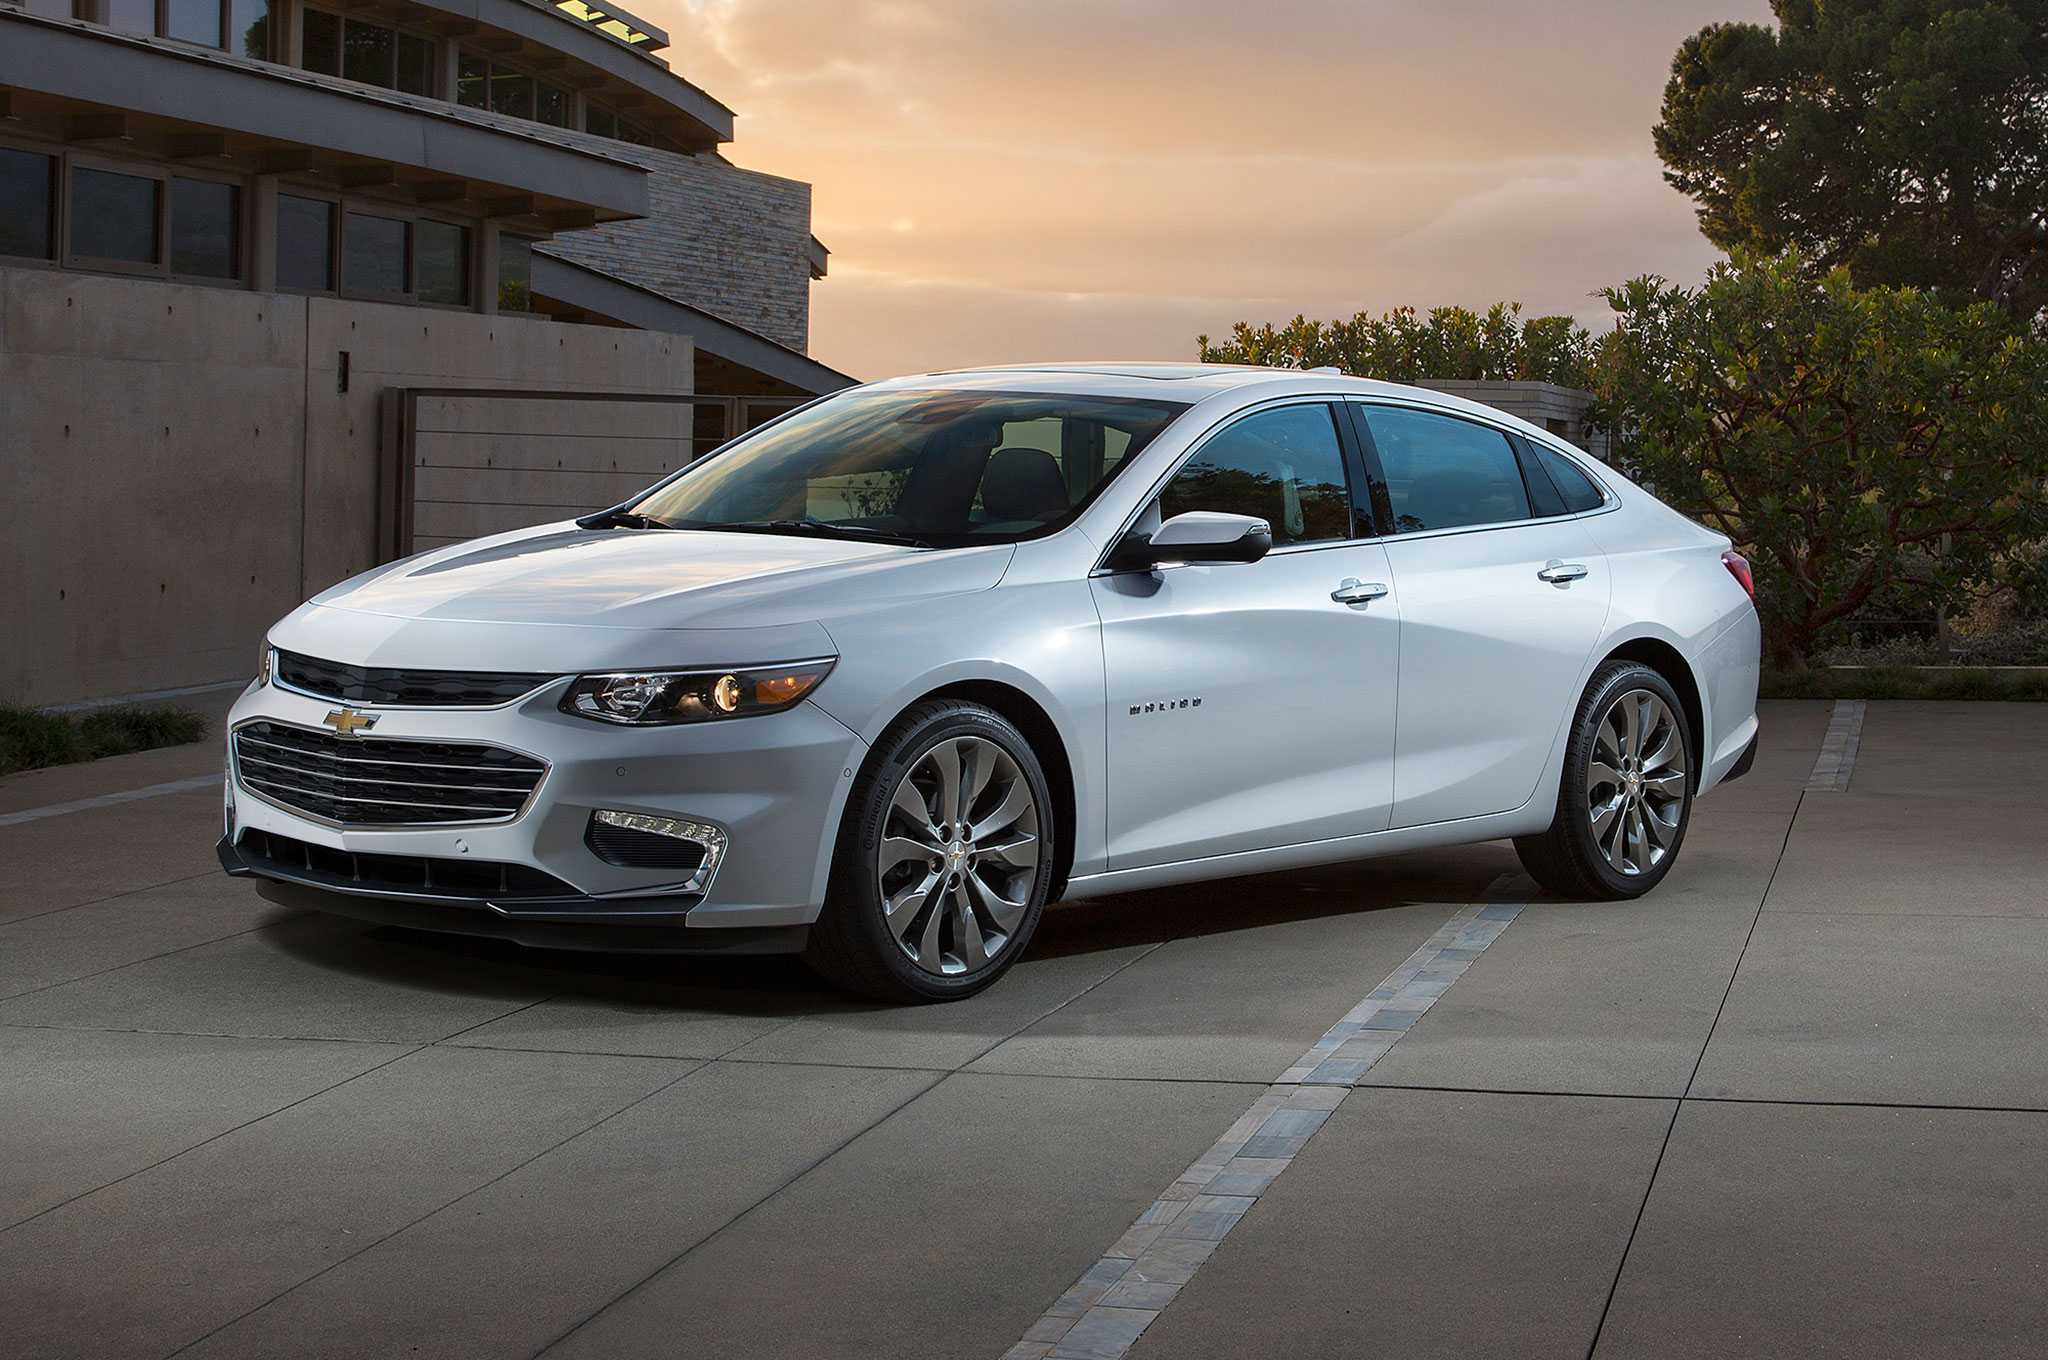 2016 Chevrolet Malibu Hybrid Gets an Official Price Tag